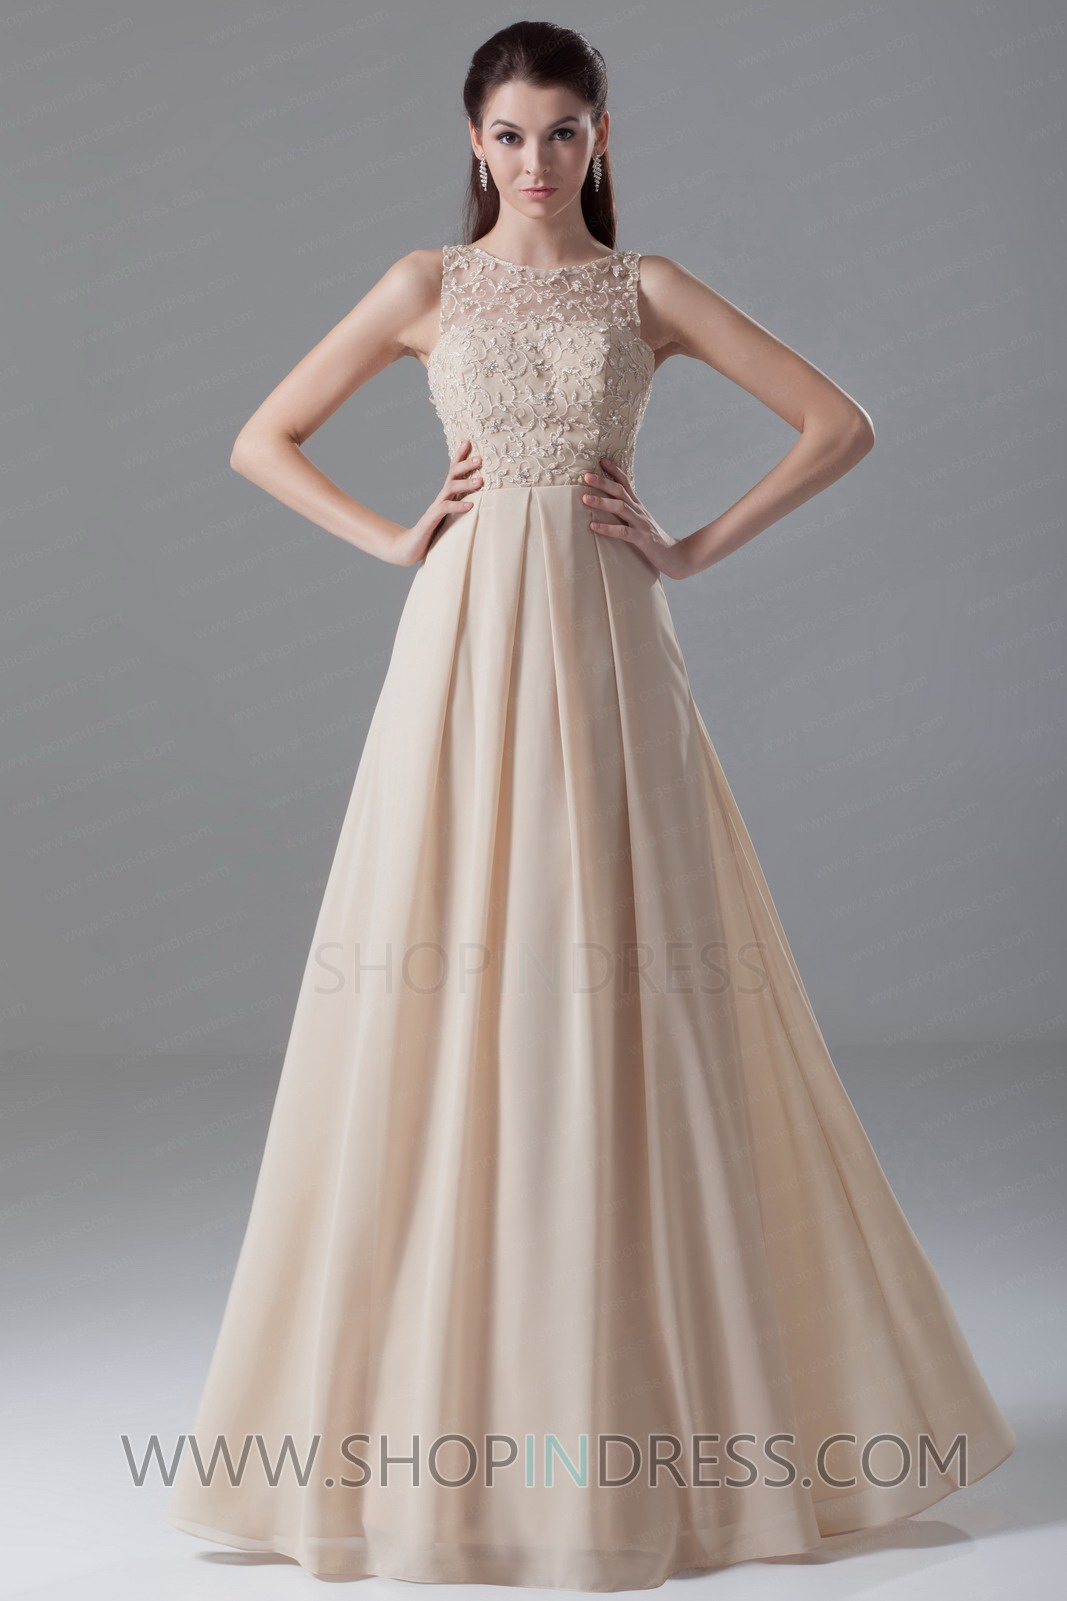 Aline square chiffon champagne prom dress with appliques tskn